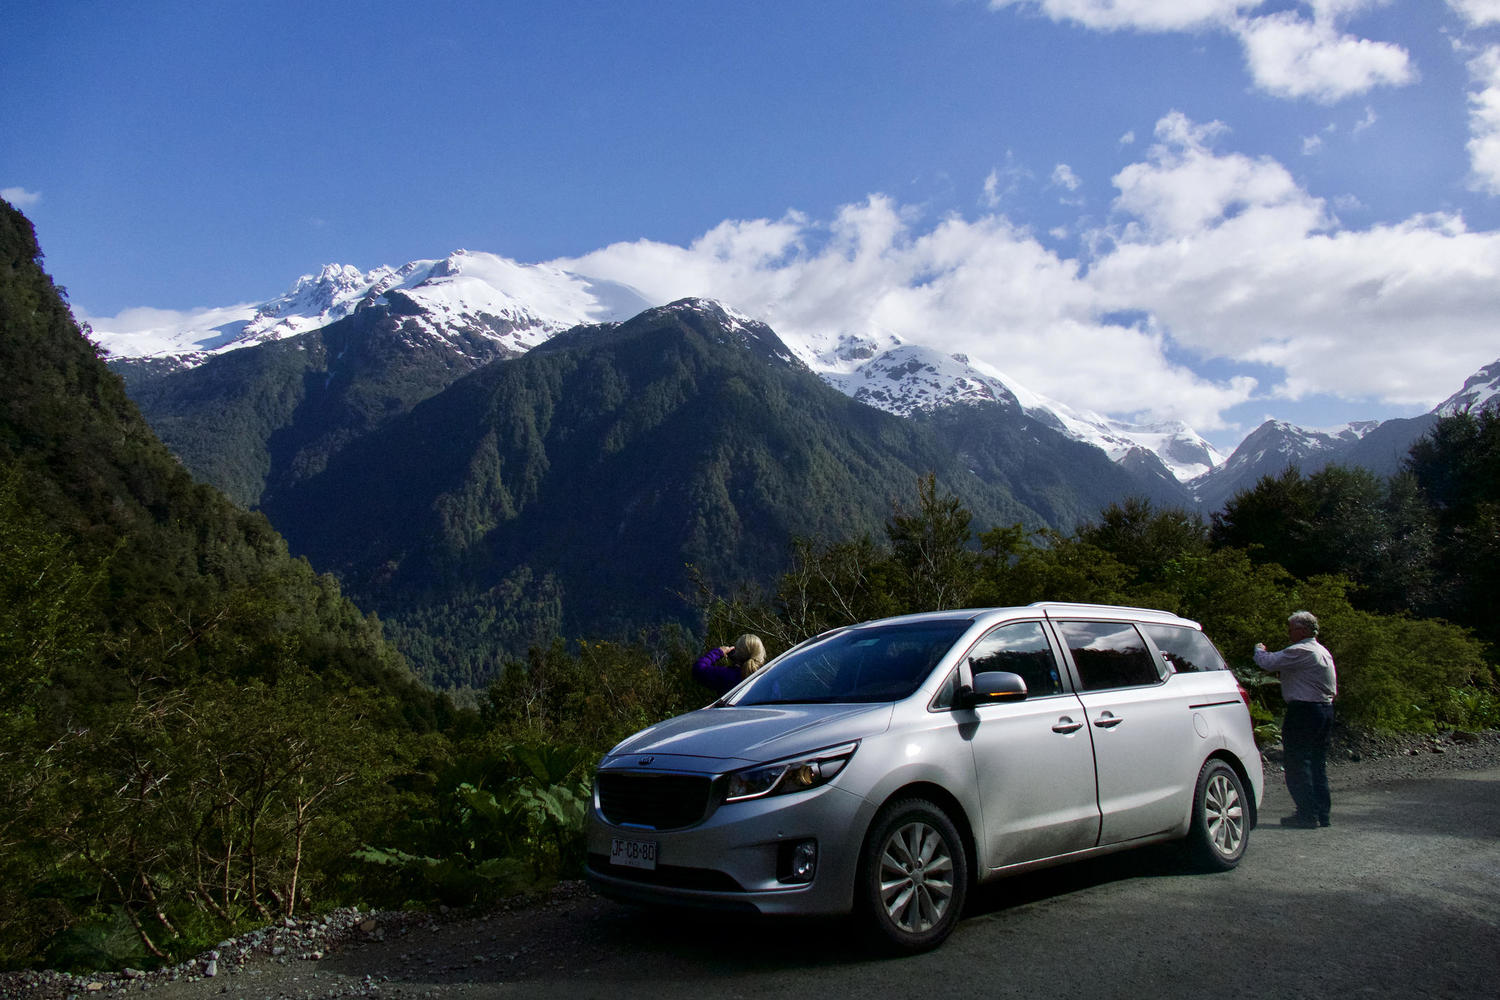 Driving gives you wonderful freedom to explore Patagonia's Carretera Austral